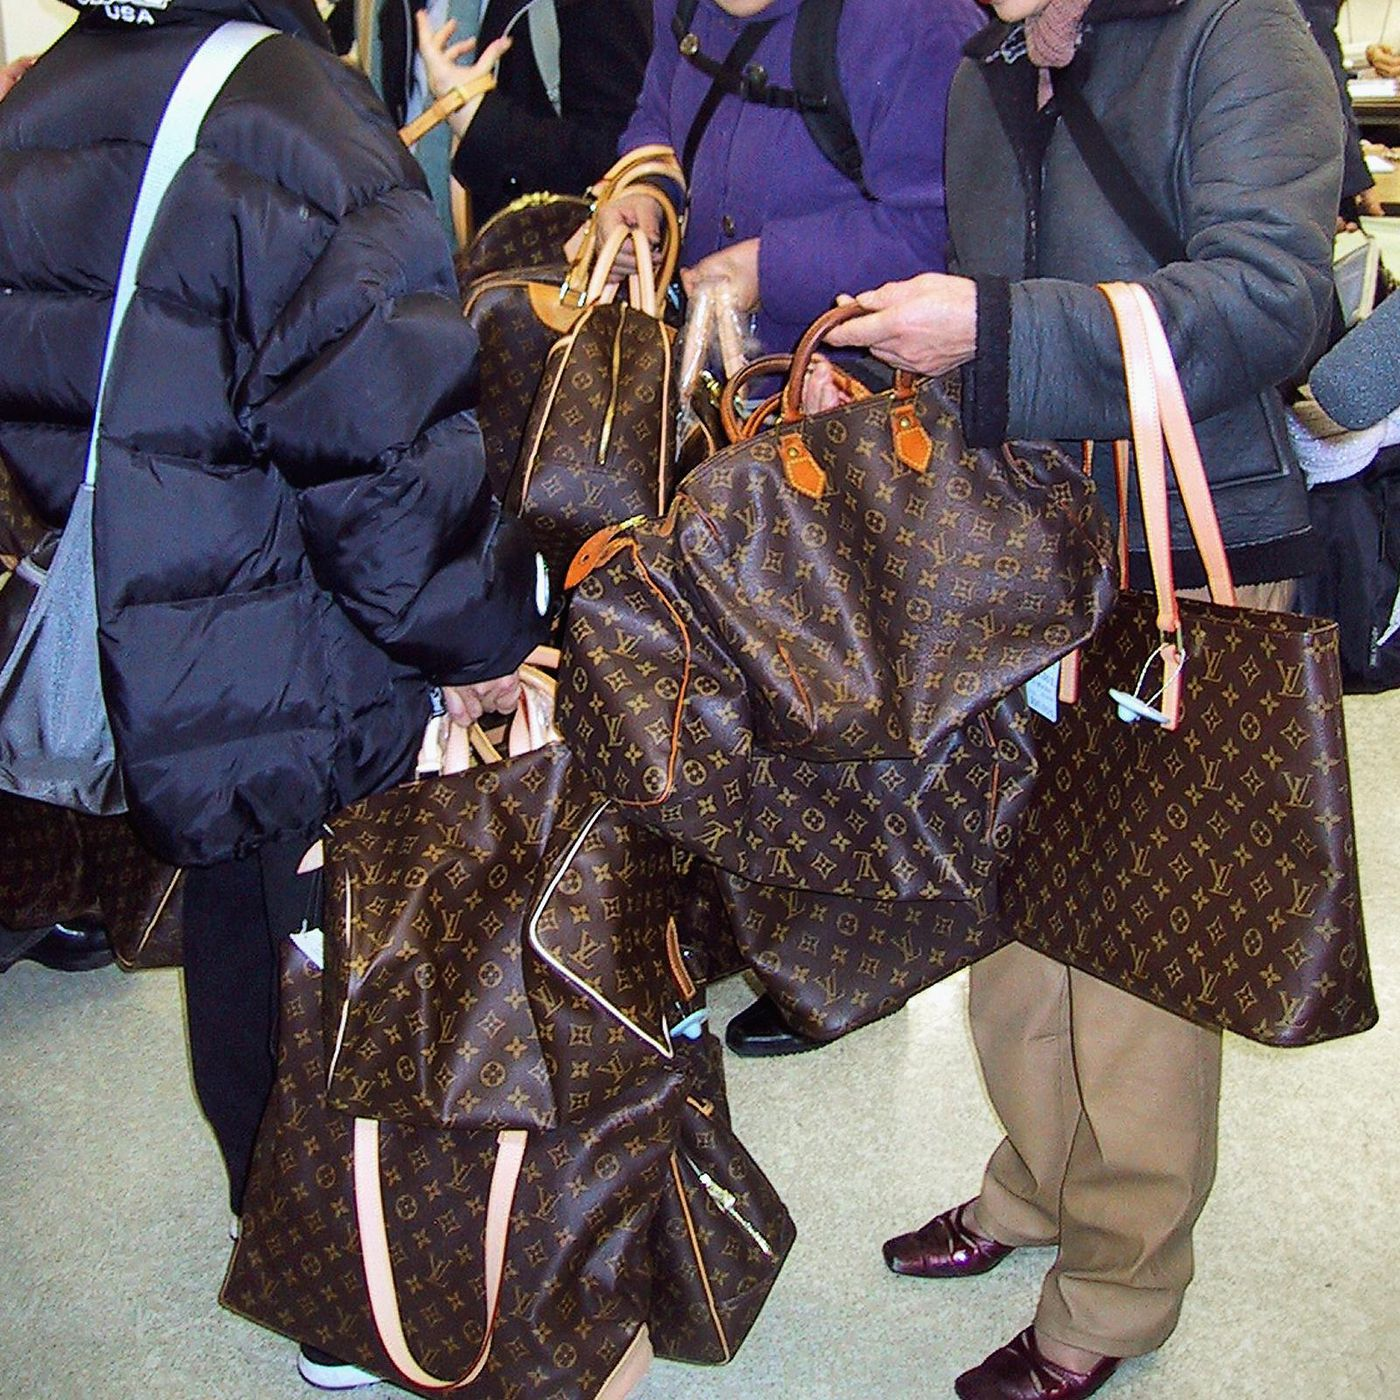 Louis Vuitton and Alibaba Team Up to Fight the Sale of Fakes